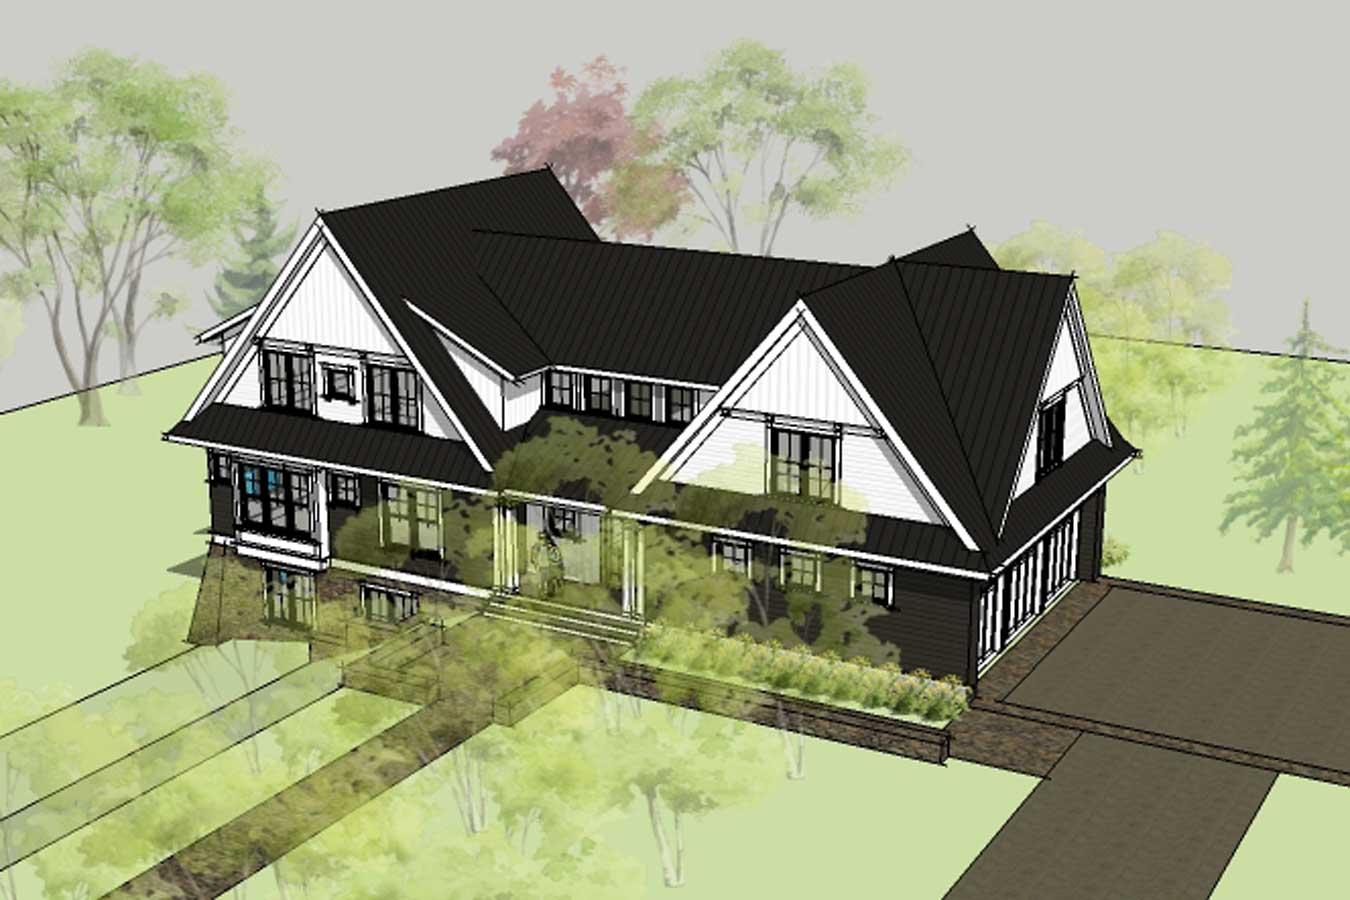 Simply Elegant Home Designs Blog: New House Plan - The Willowbrook